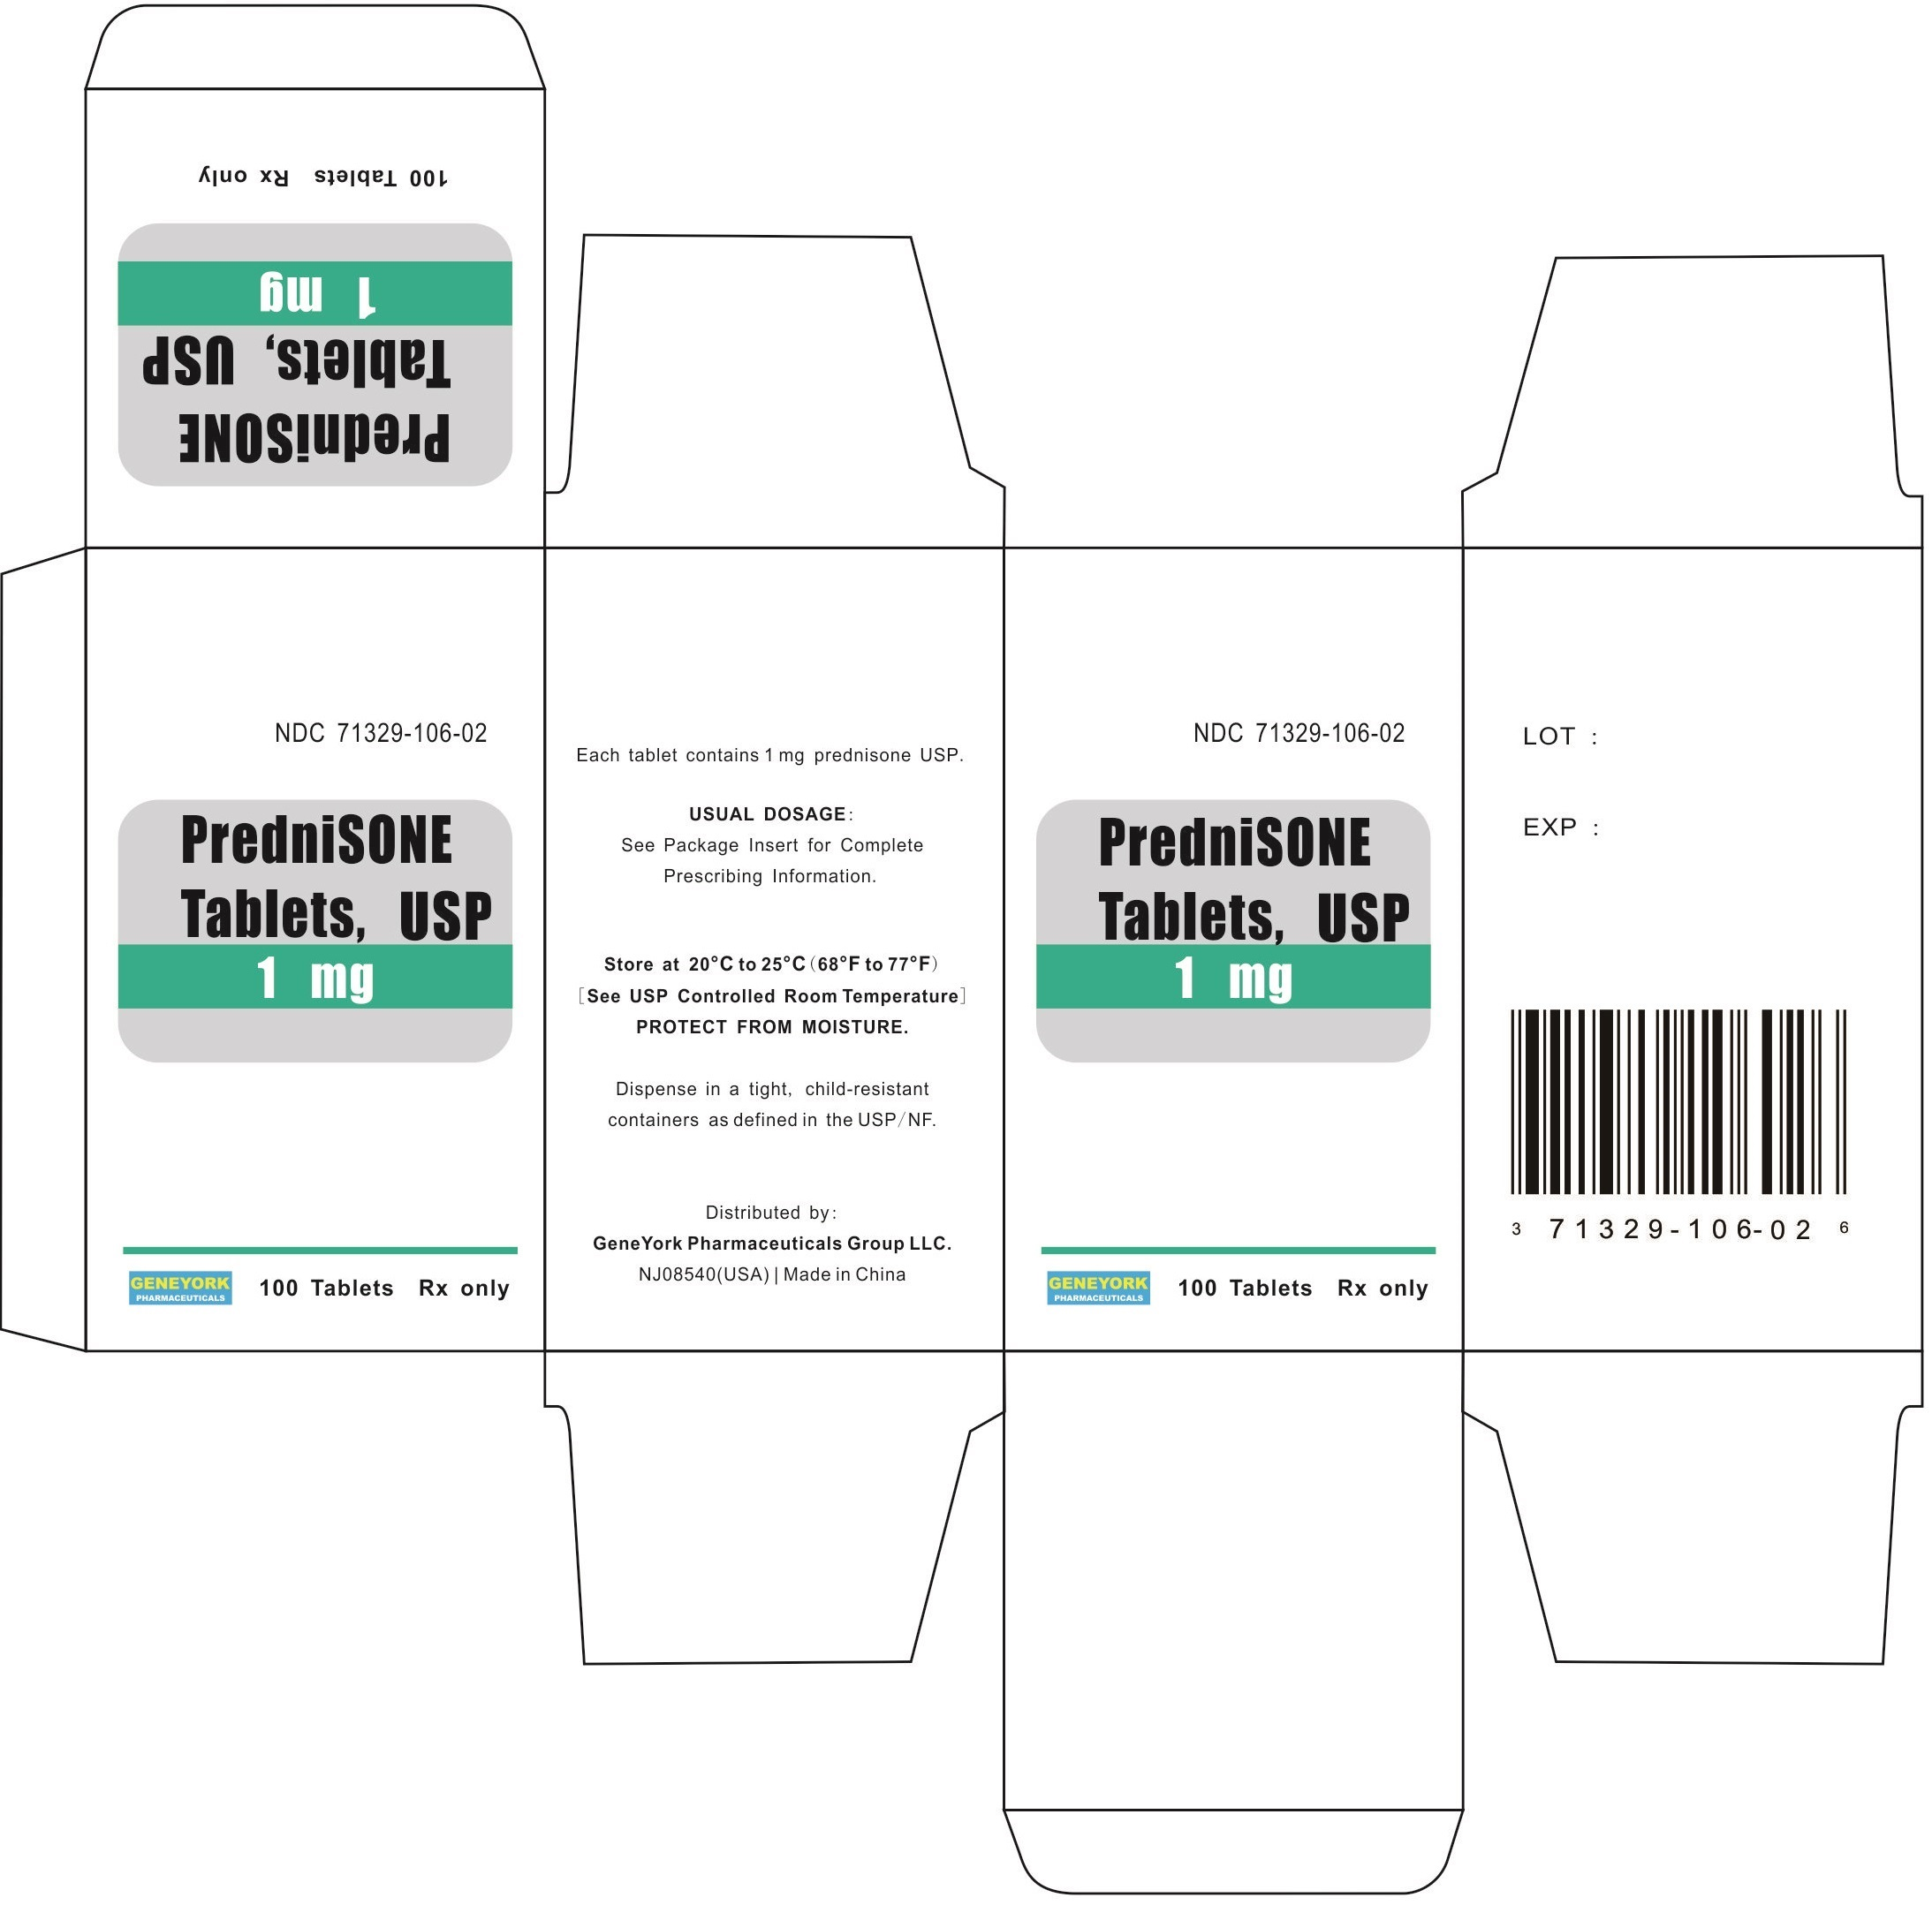 100 Tablets Carton Label